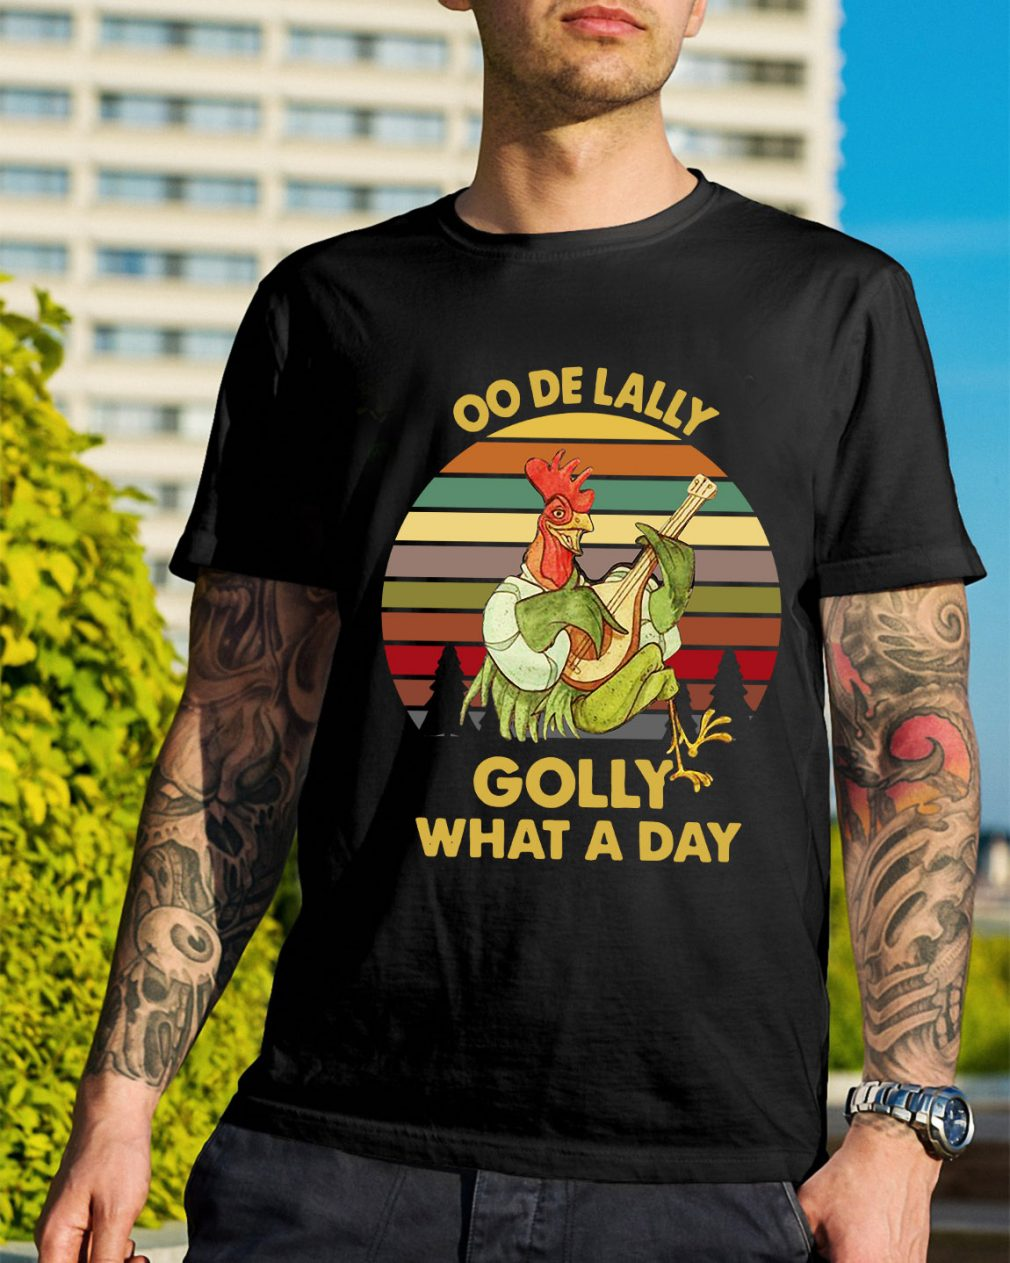 Oo De Lally Golly what a day sunset retro shirt